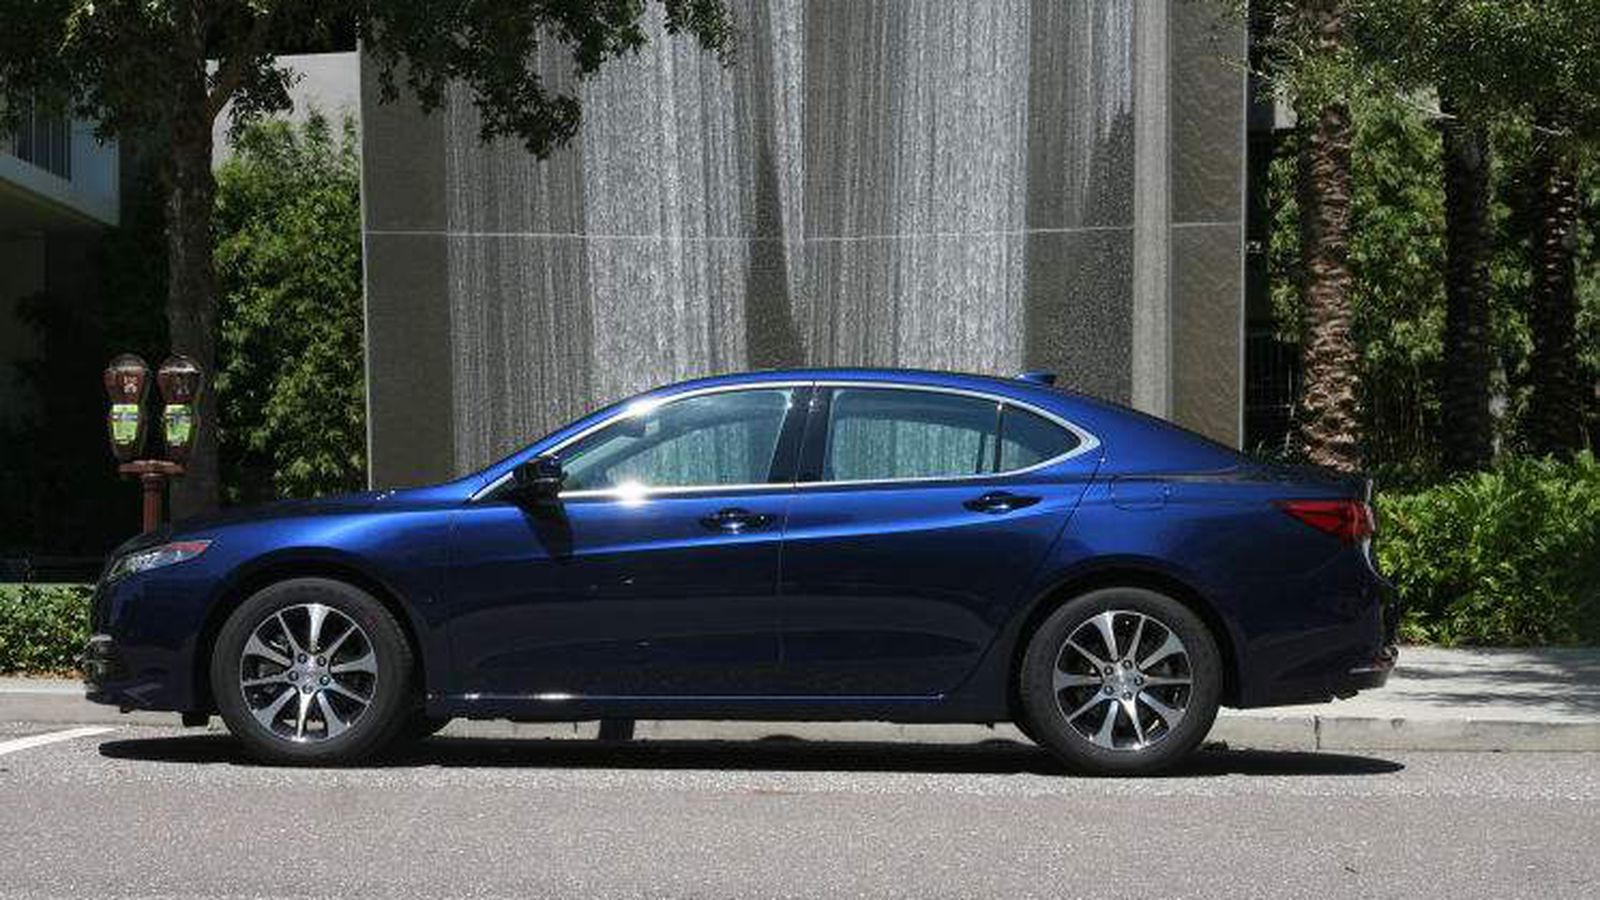 The Daily Drivers 2015 Acura Tlx 2 4l Tech Has Family S Features